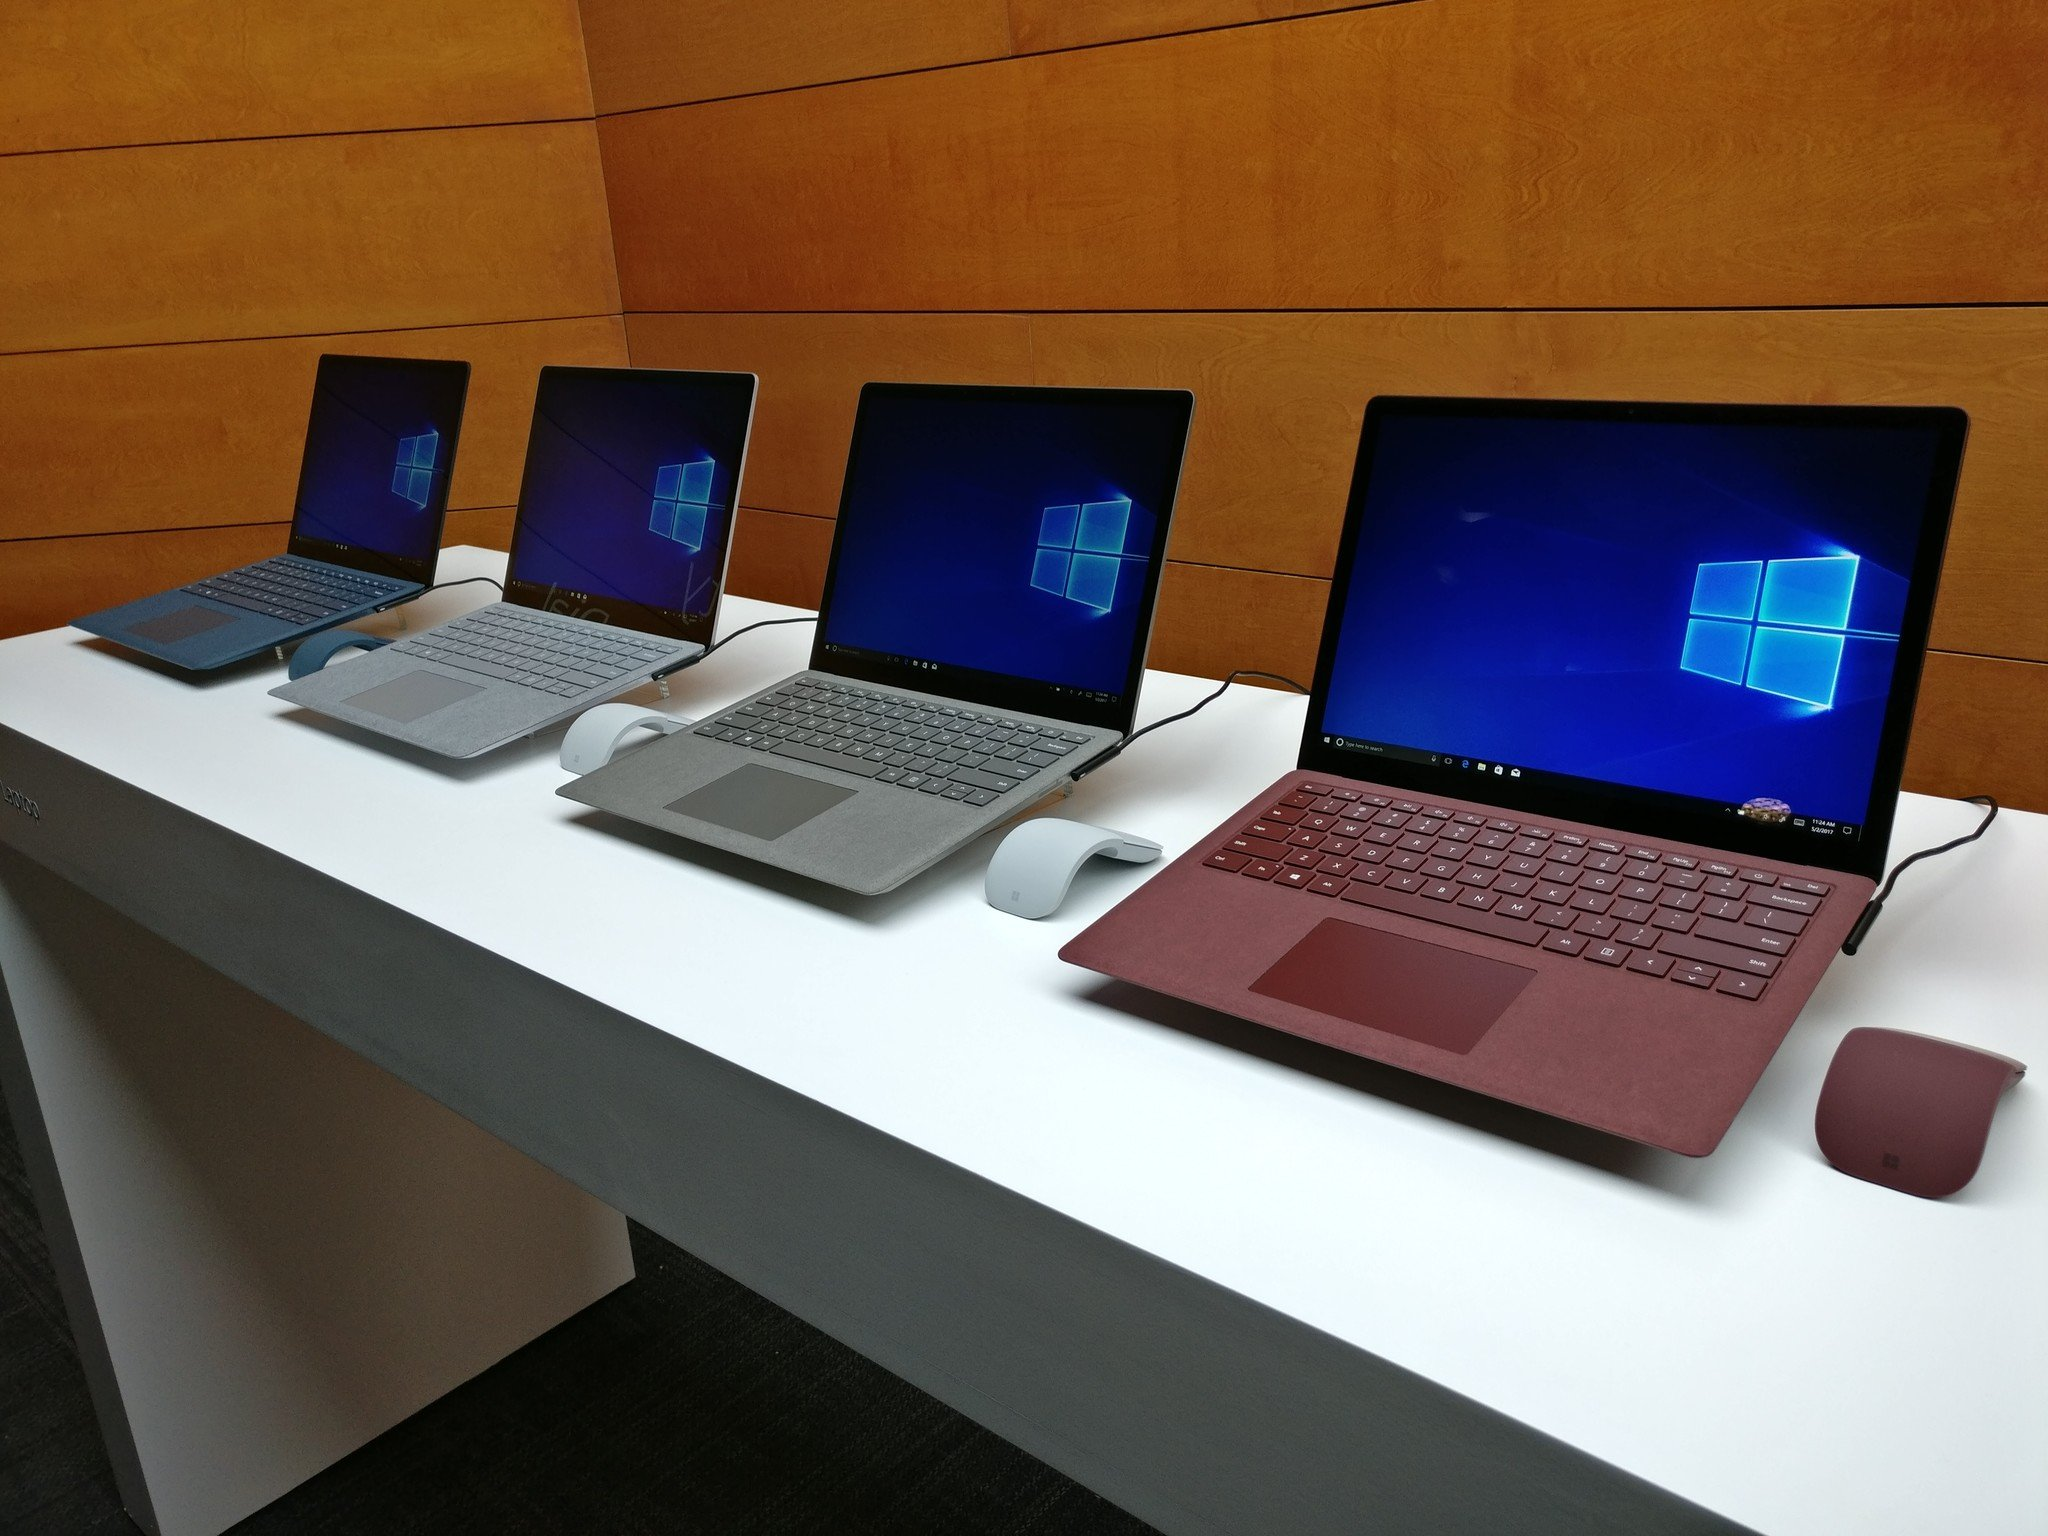 surface laptop vs macbook pro tech spec smackdown